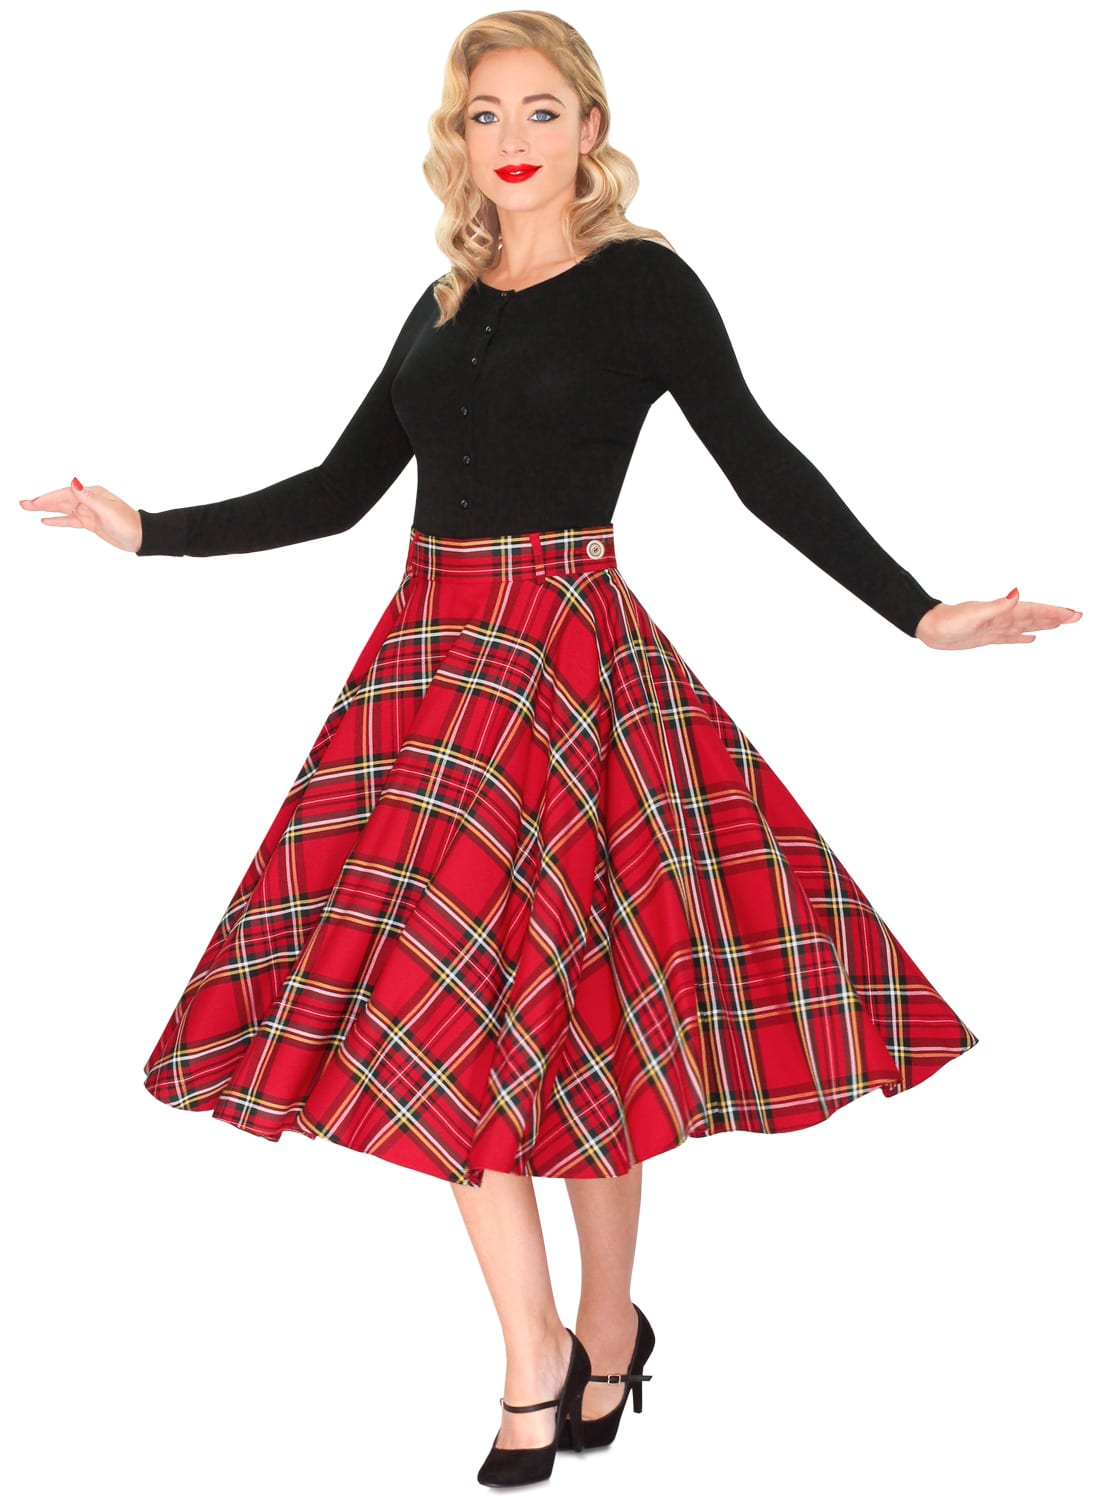 A long red skirt looks best on medium to tall women with slender figures; if a petite woman tries the long look, they may end up swallowed in fabric. If you?re on the short side, don?t wear skirts that go past your knees, and a tapered skirt might make you appear a little taller.